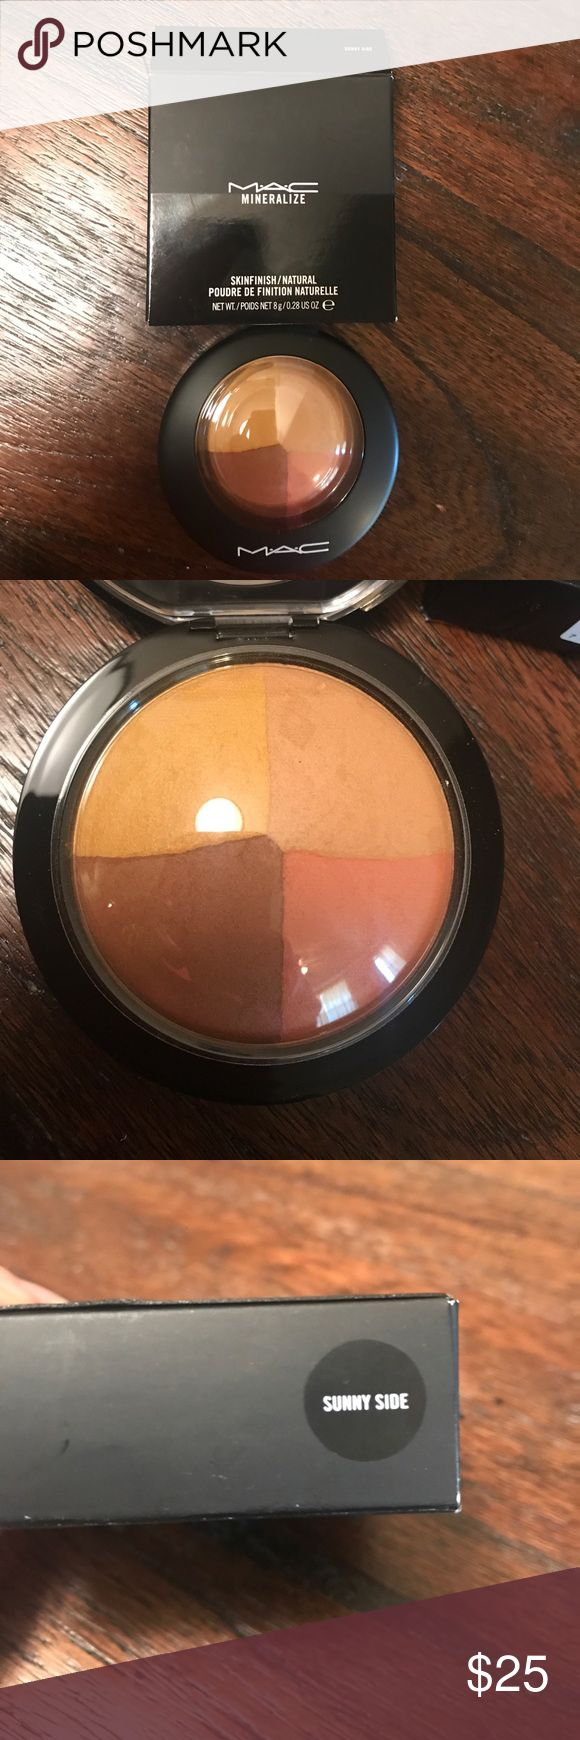 *NWT* MAC Mineralize skinfinish in Sunny side Brand new in box and never used or swatched MAC Mineralized Skinfinish in the shade Sunny side. MAC Cosmetics Makeup